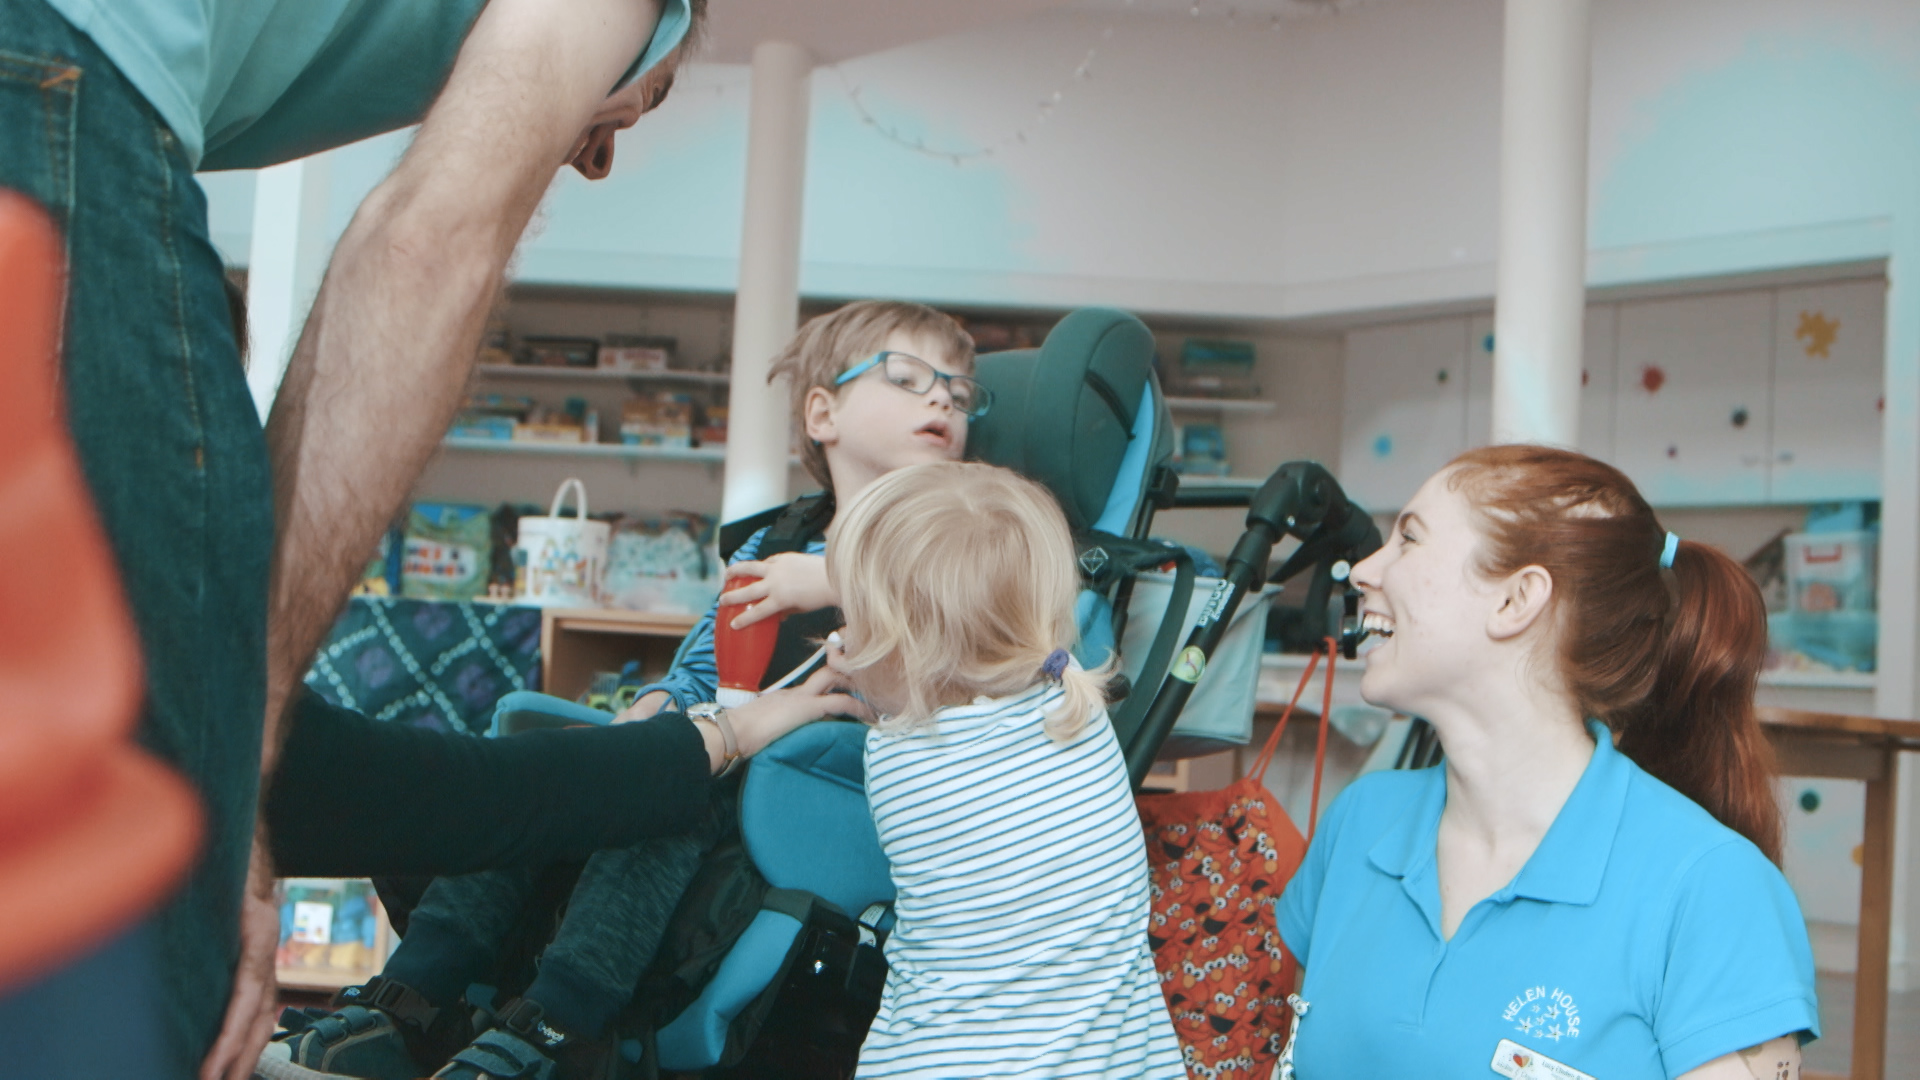 hospice fundraising video production | magneto films | london